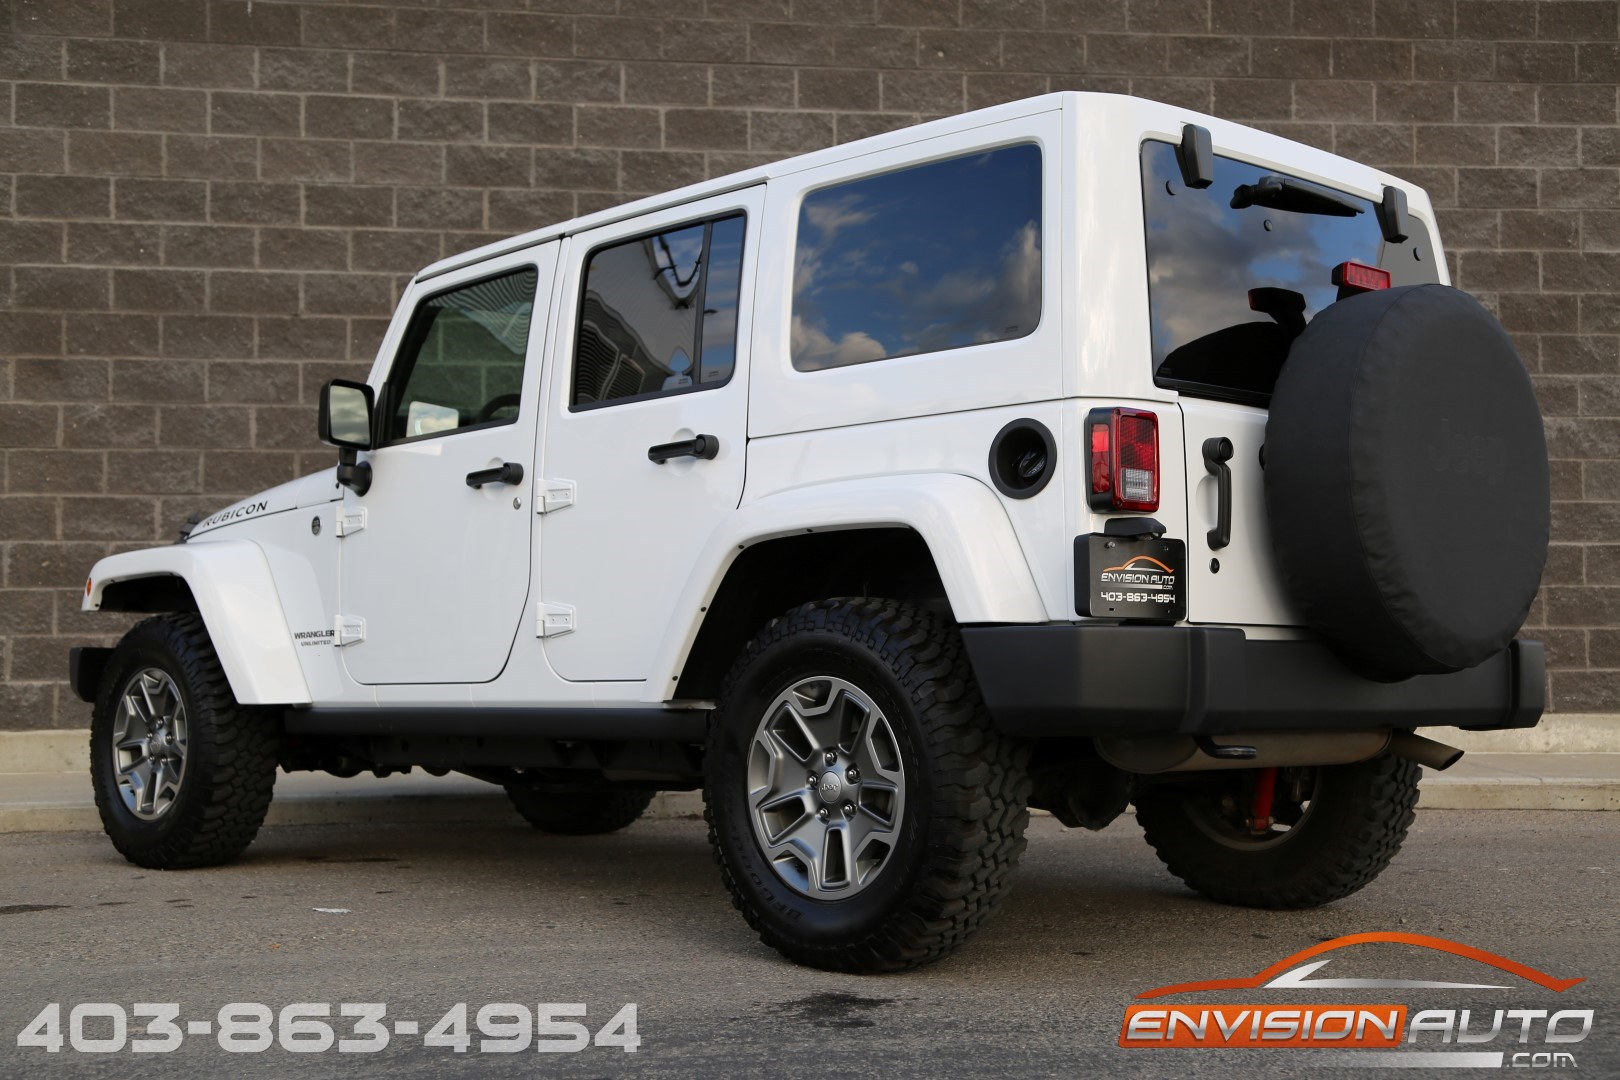 2015 jeep wrangler unlimited rubicon 6 speed manual. Black Bedroom Furniture Sets. Home Design Ideas